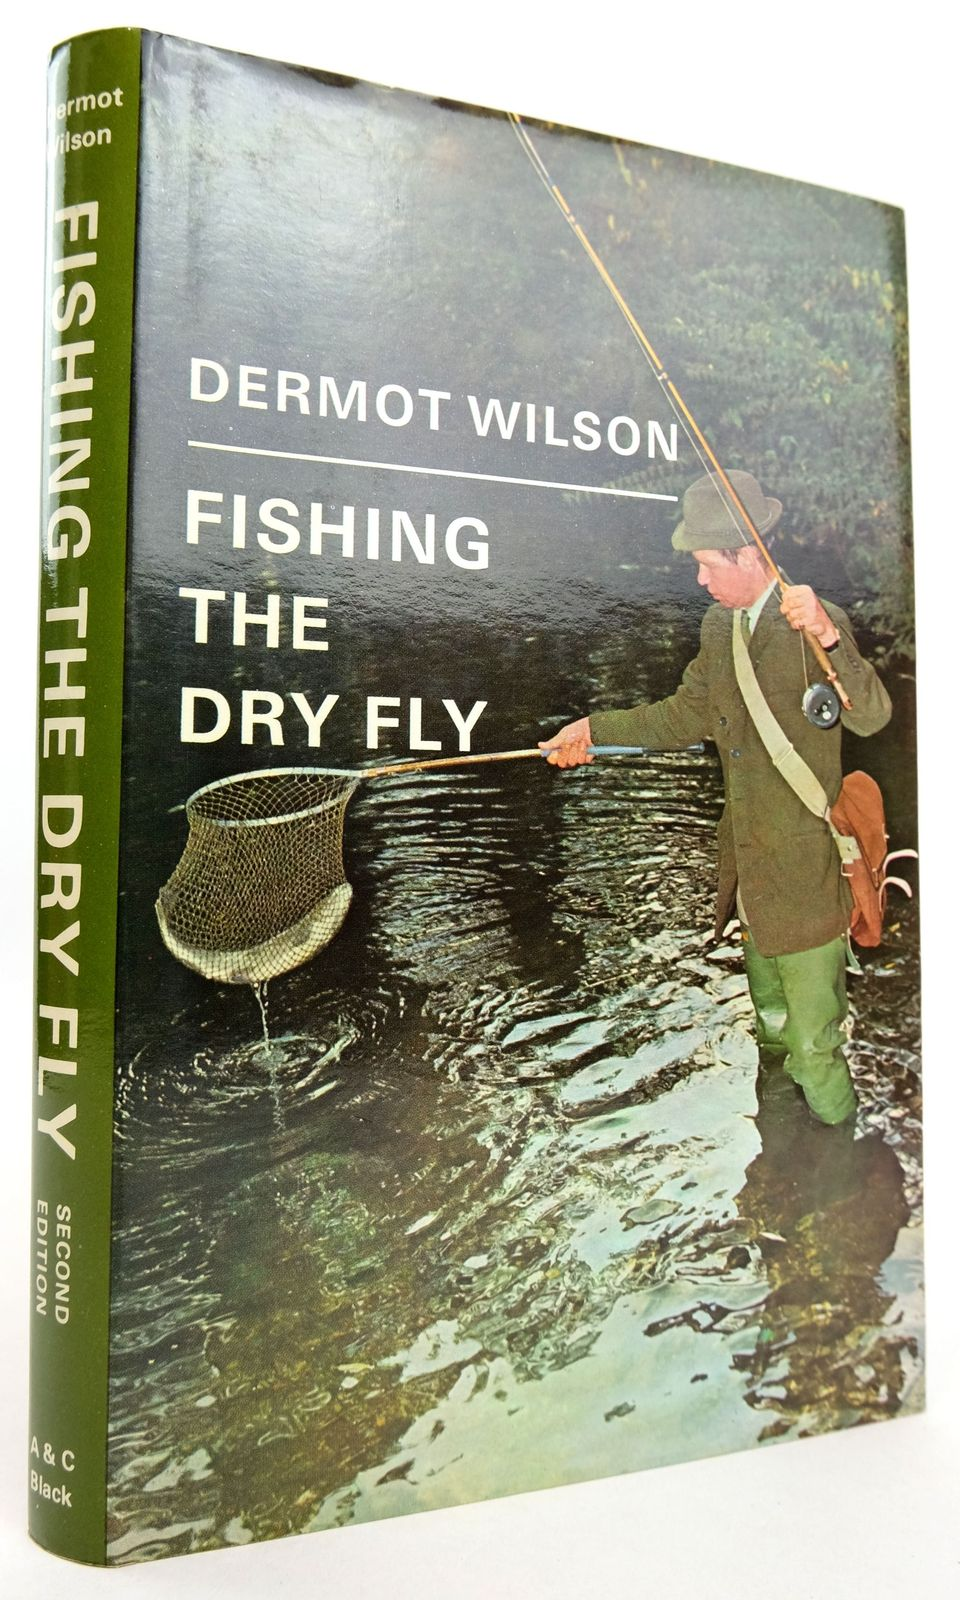 Photo of FISHING THE DRY FLY written by Wilson, Dermot published by Adam & Charles Black (STOCK CODE: 1819201)  for sale by Stella & Rose's Books